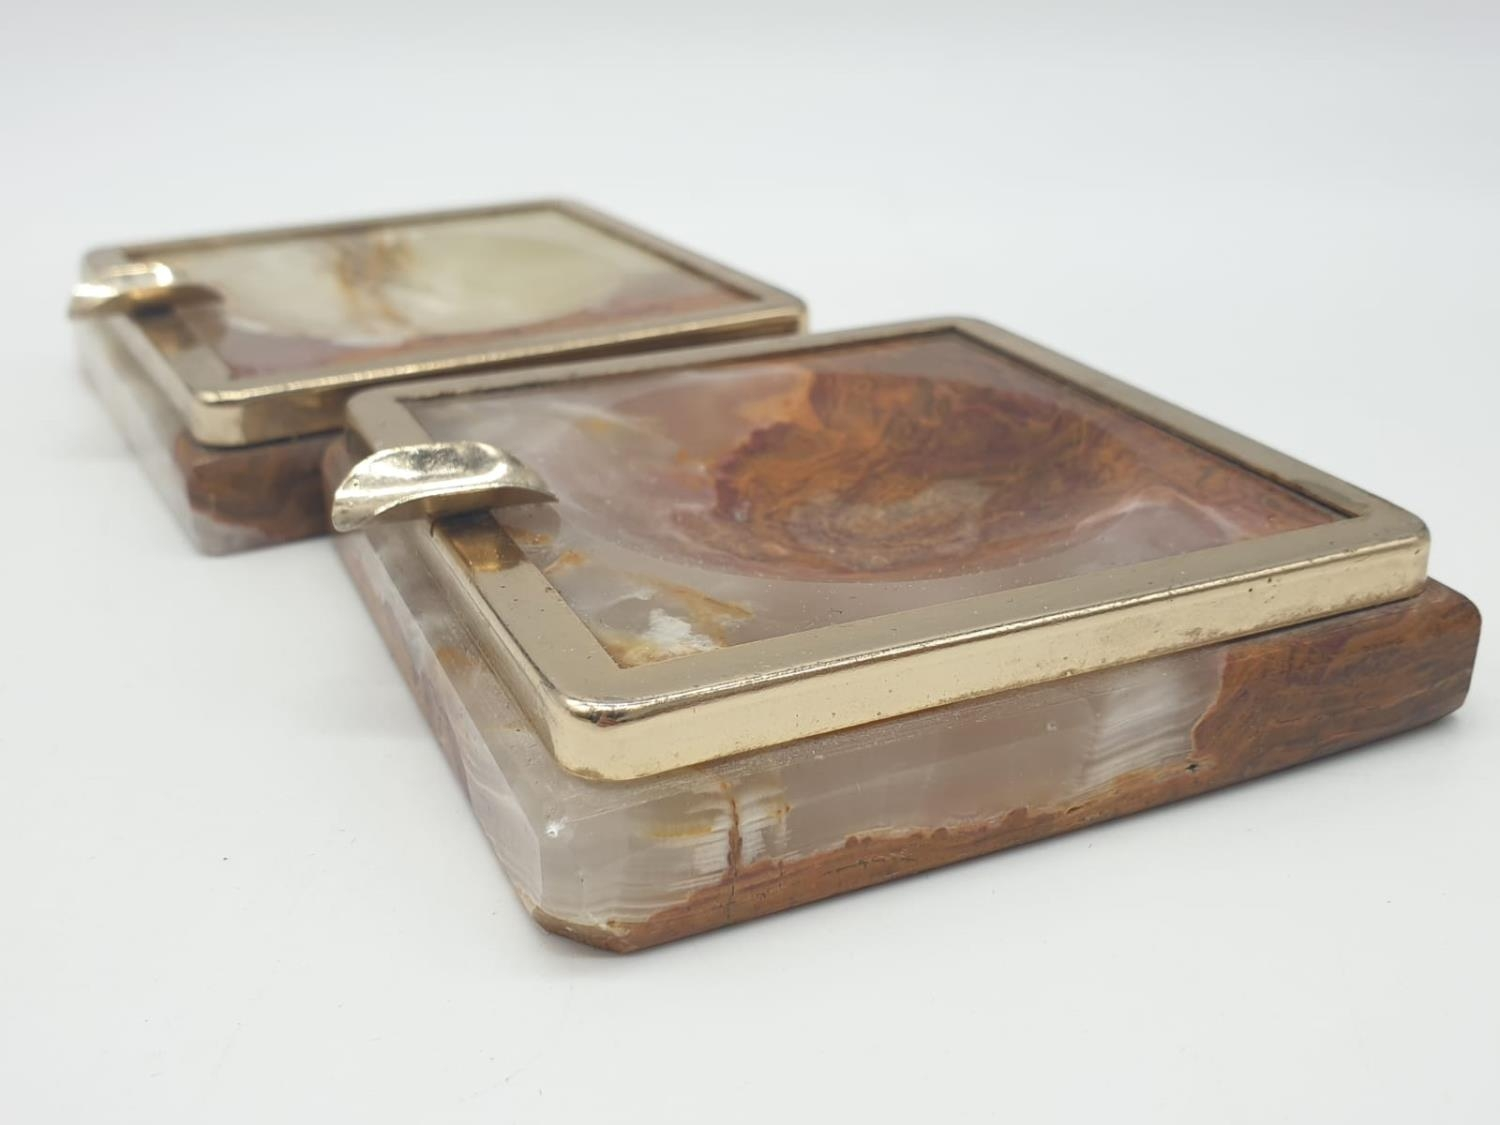 An onyx cigarette box, lighter and 2 onyx ash trays (small chip on cigarette box lid). - Image 15 of 16